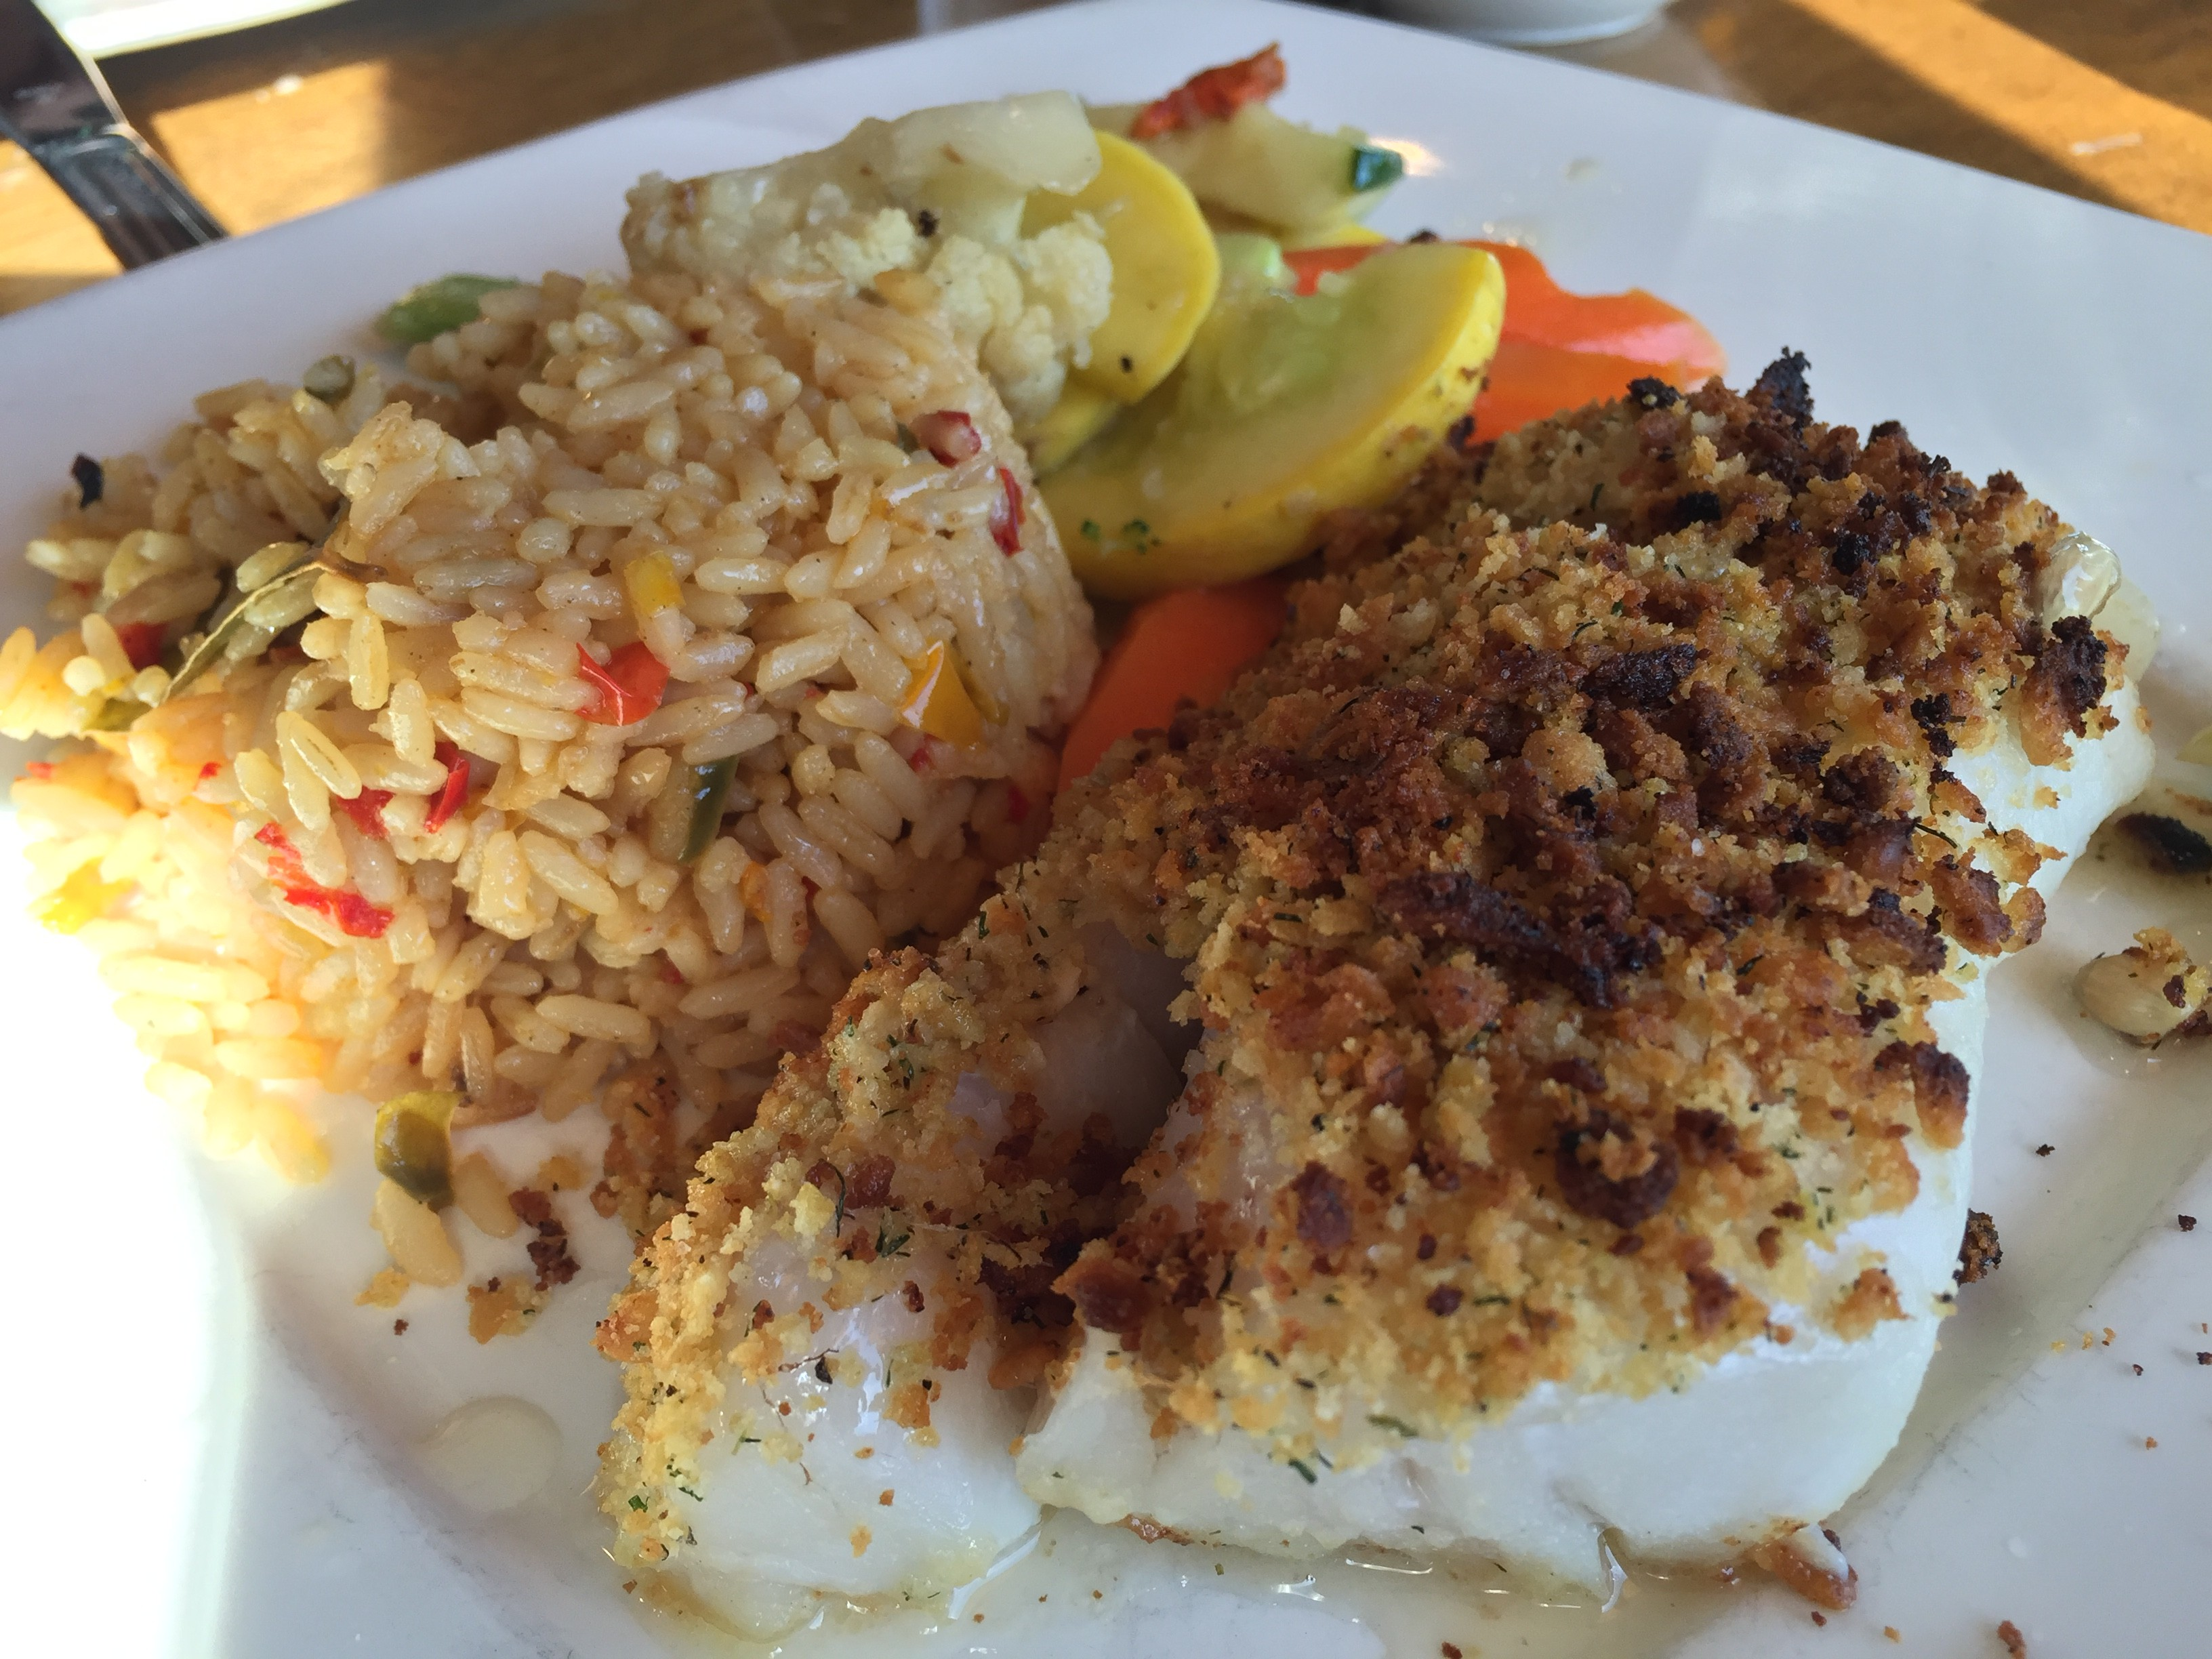 Haddock, Rice, Veggies...it was just OK.